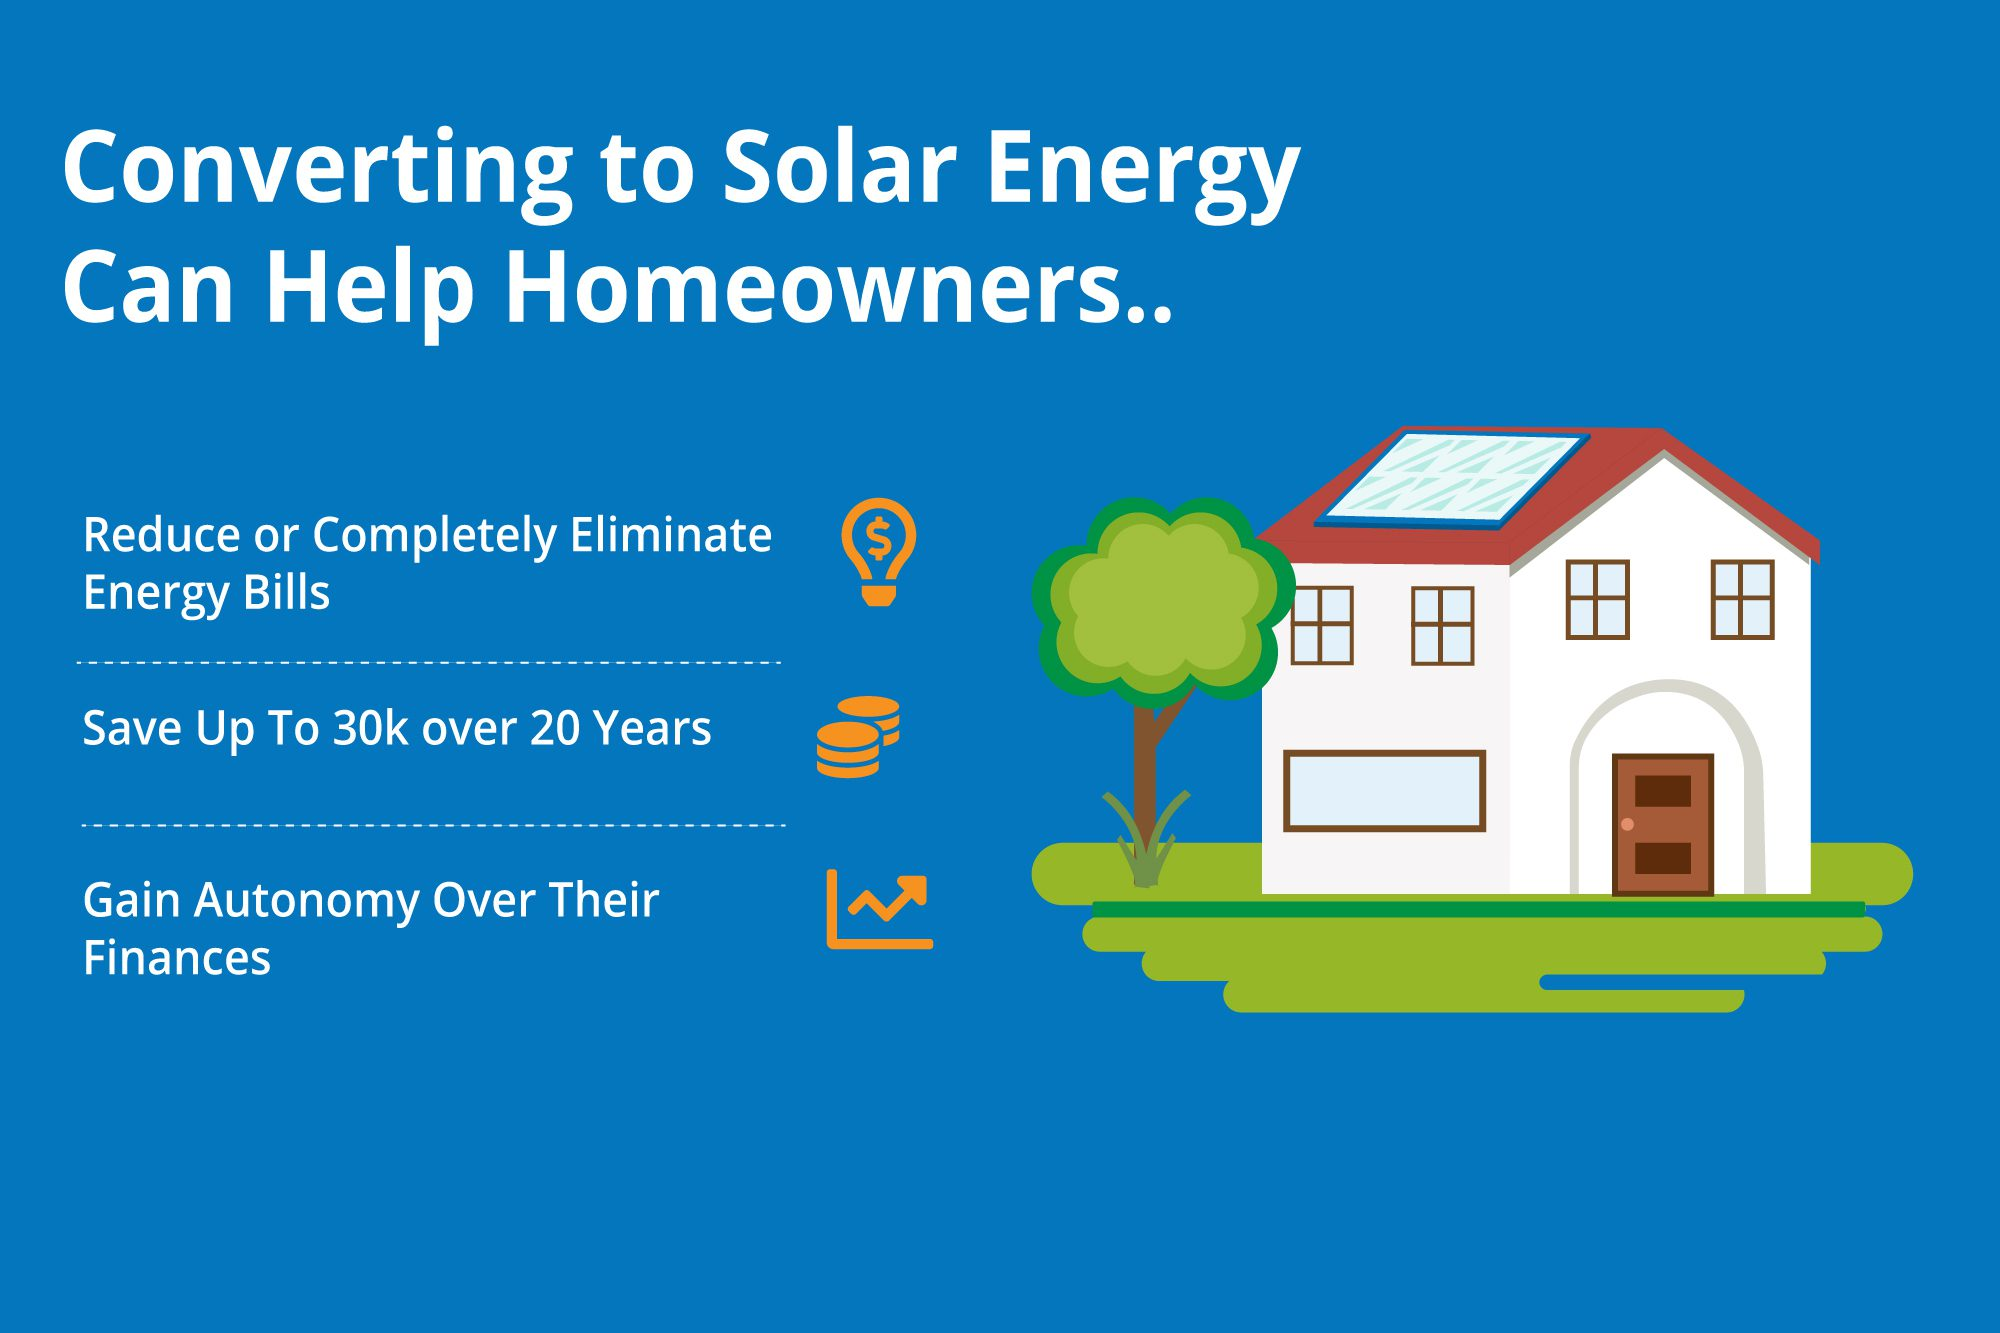 An infographic with facts about solar energy